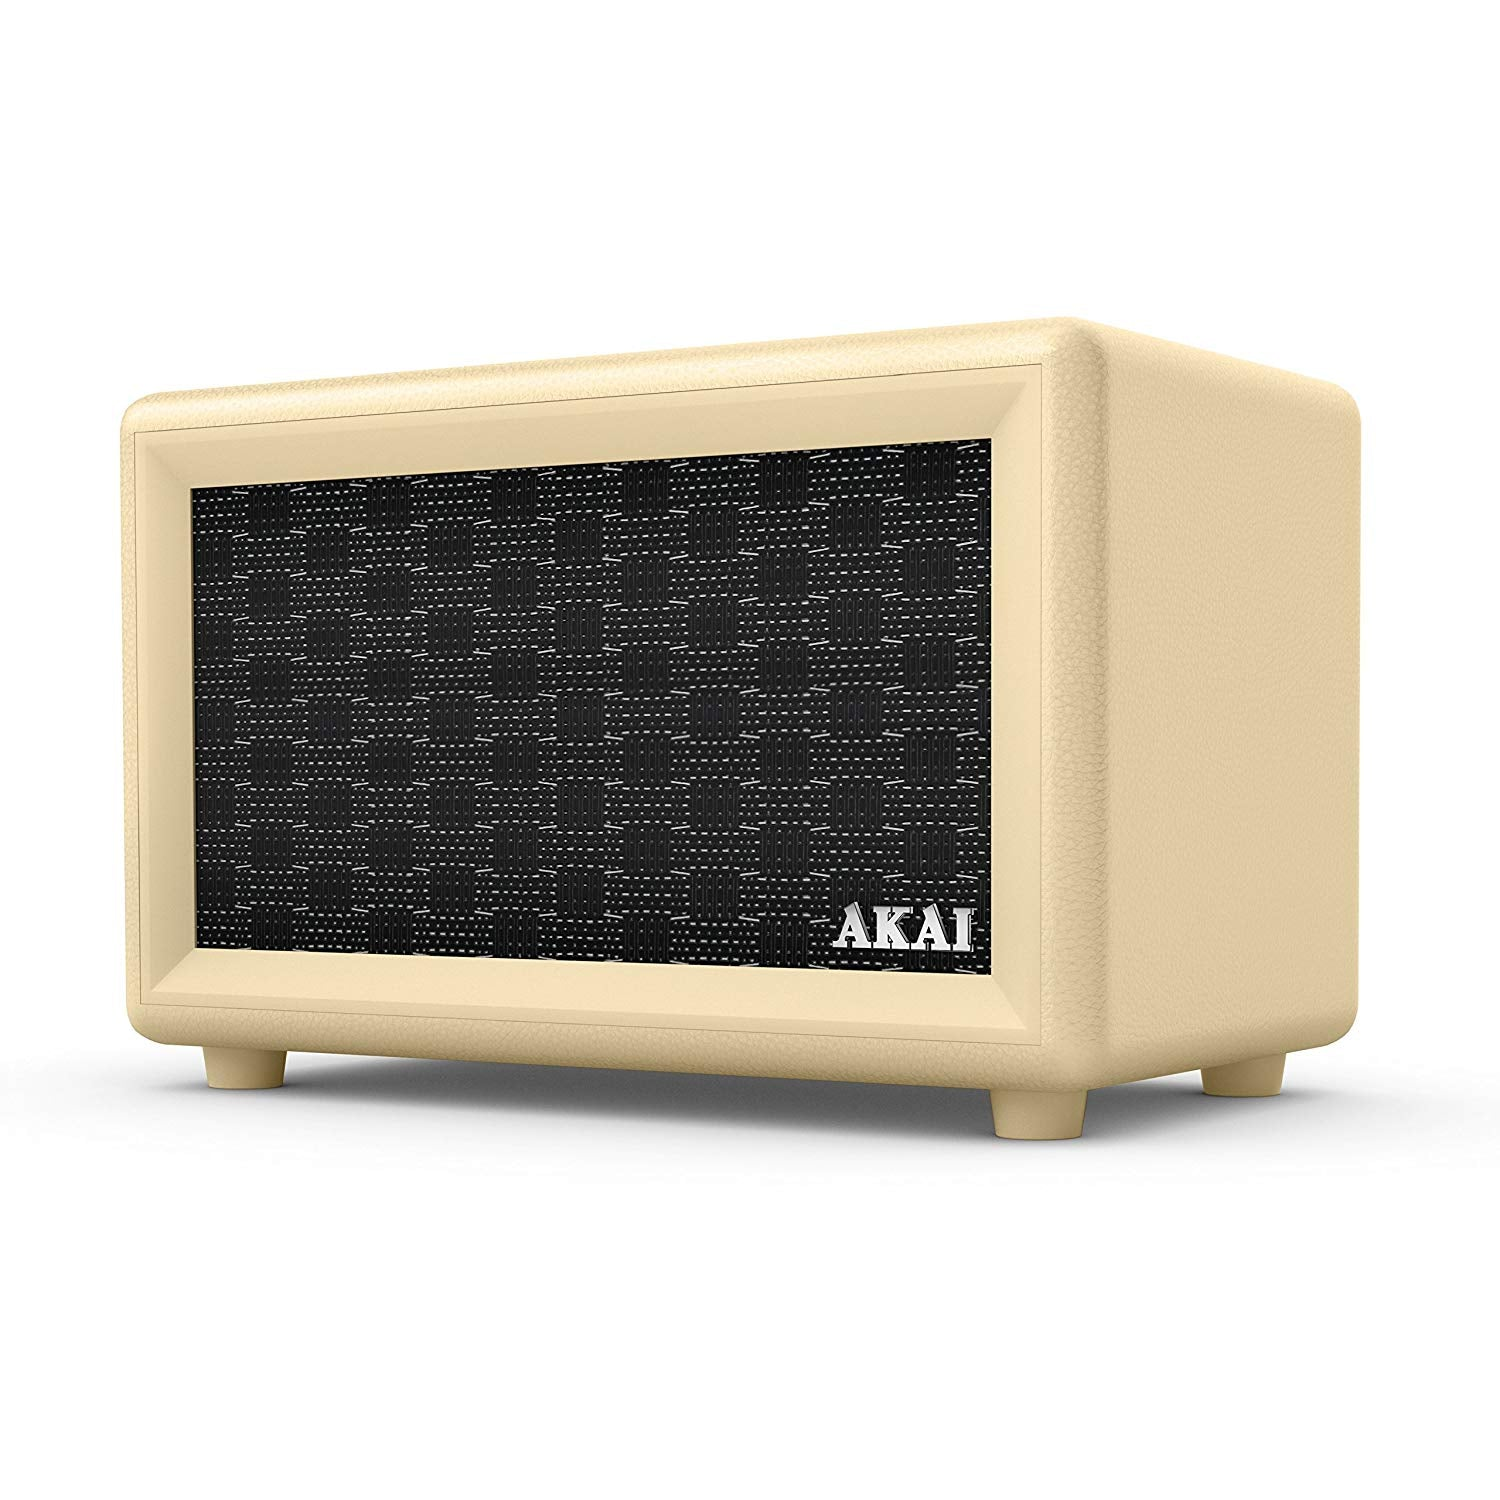 AKAI RETRO DESIGN BLUETOOTH SPEAKER WITH BUILT-IN RECHARGEABLE BATTERY: CREAM [TECH & TURNTABLES] GOLDEN DISCS